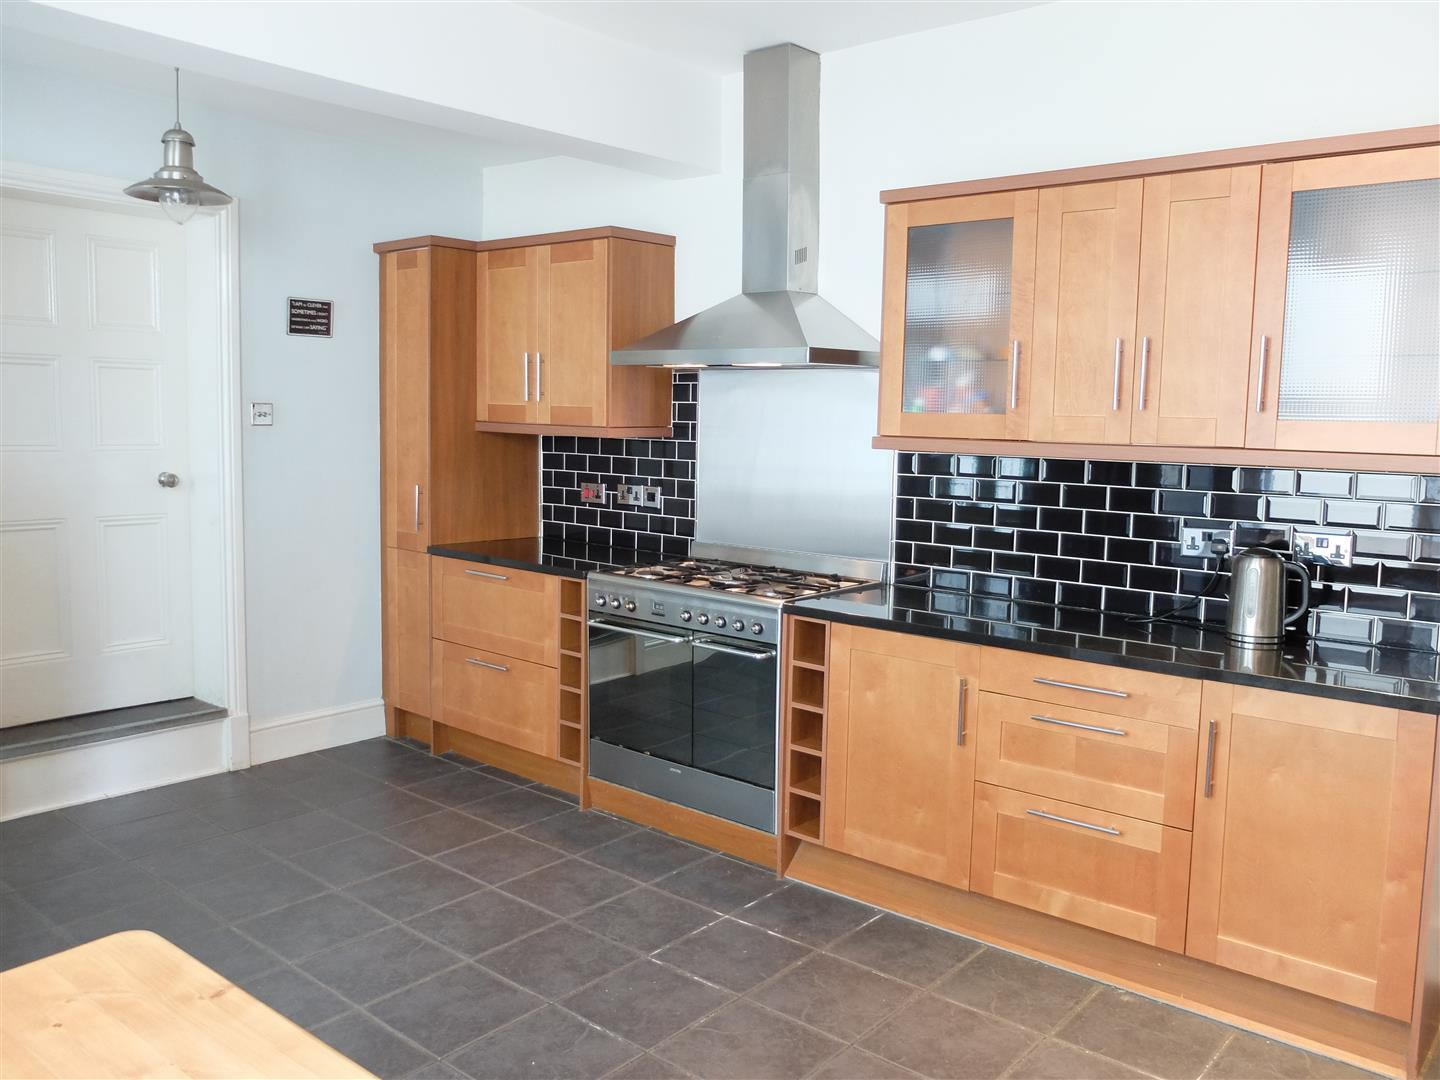 40 Victoria Place Carlisle Home For Sale 219,995